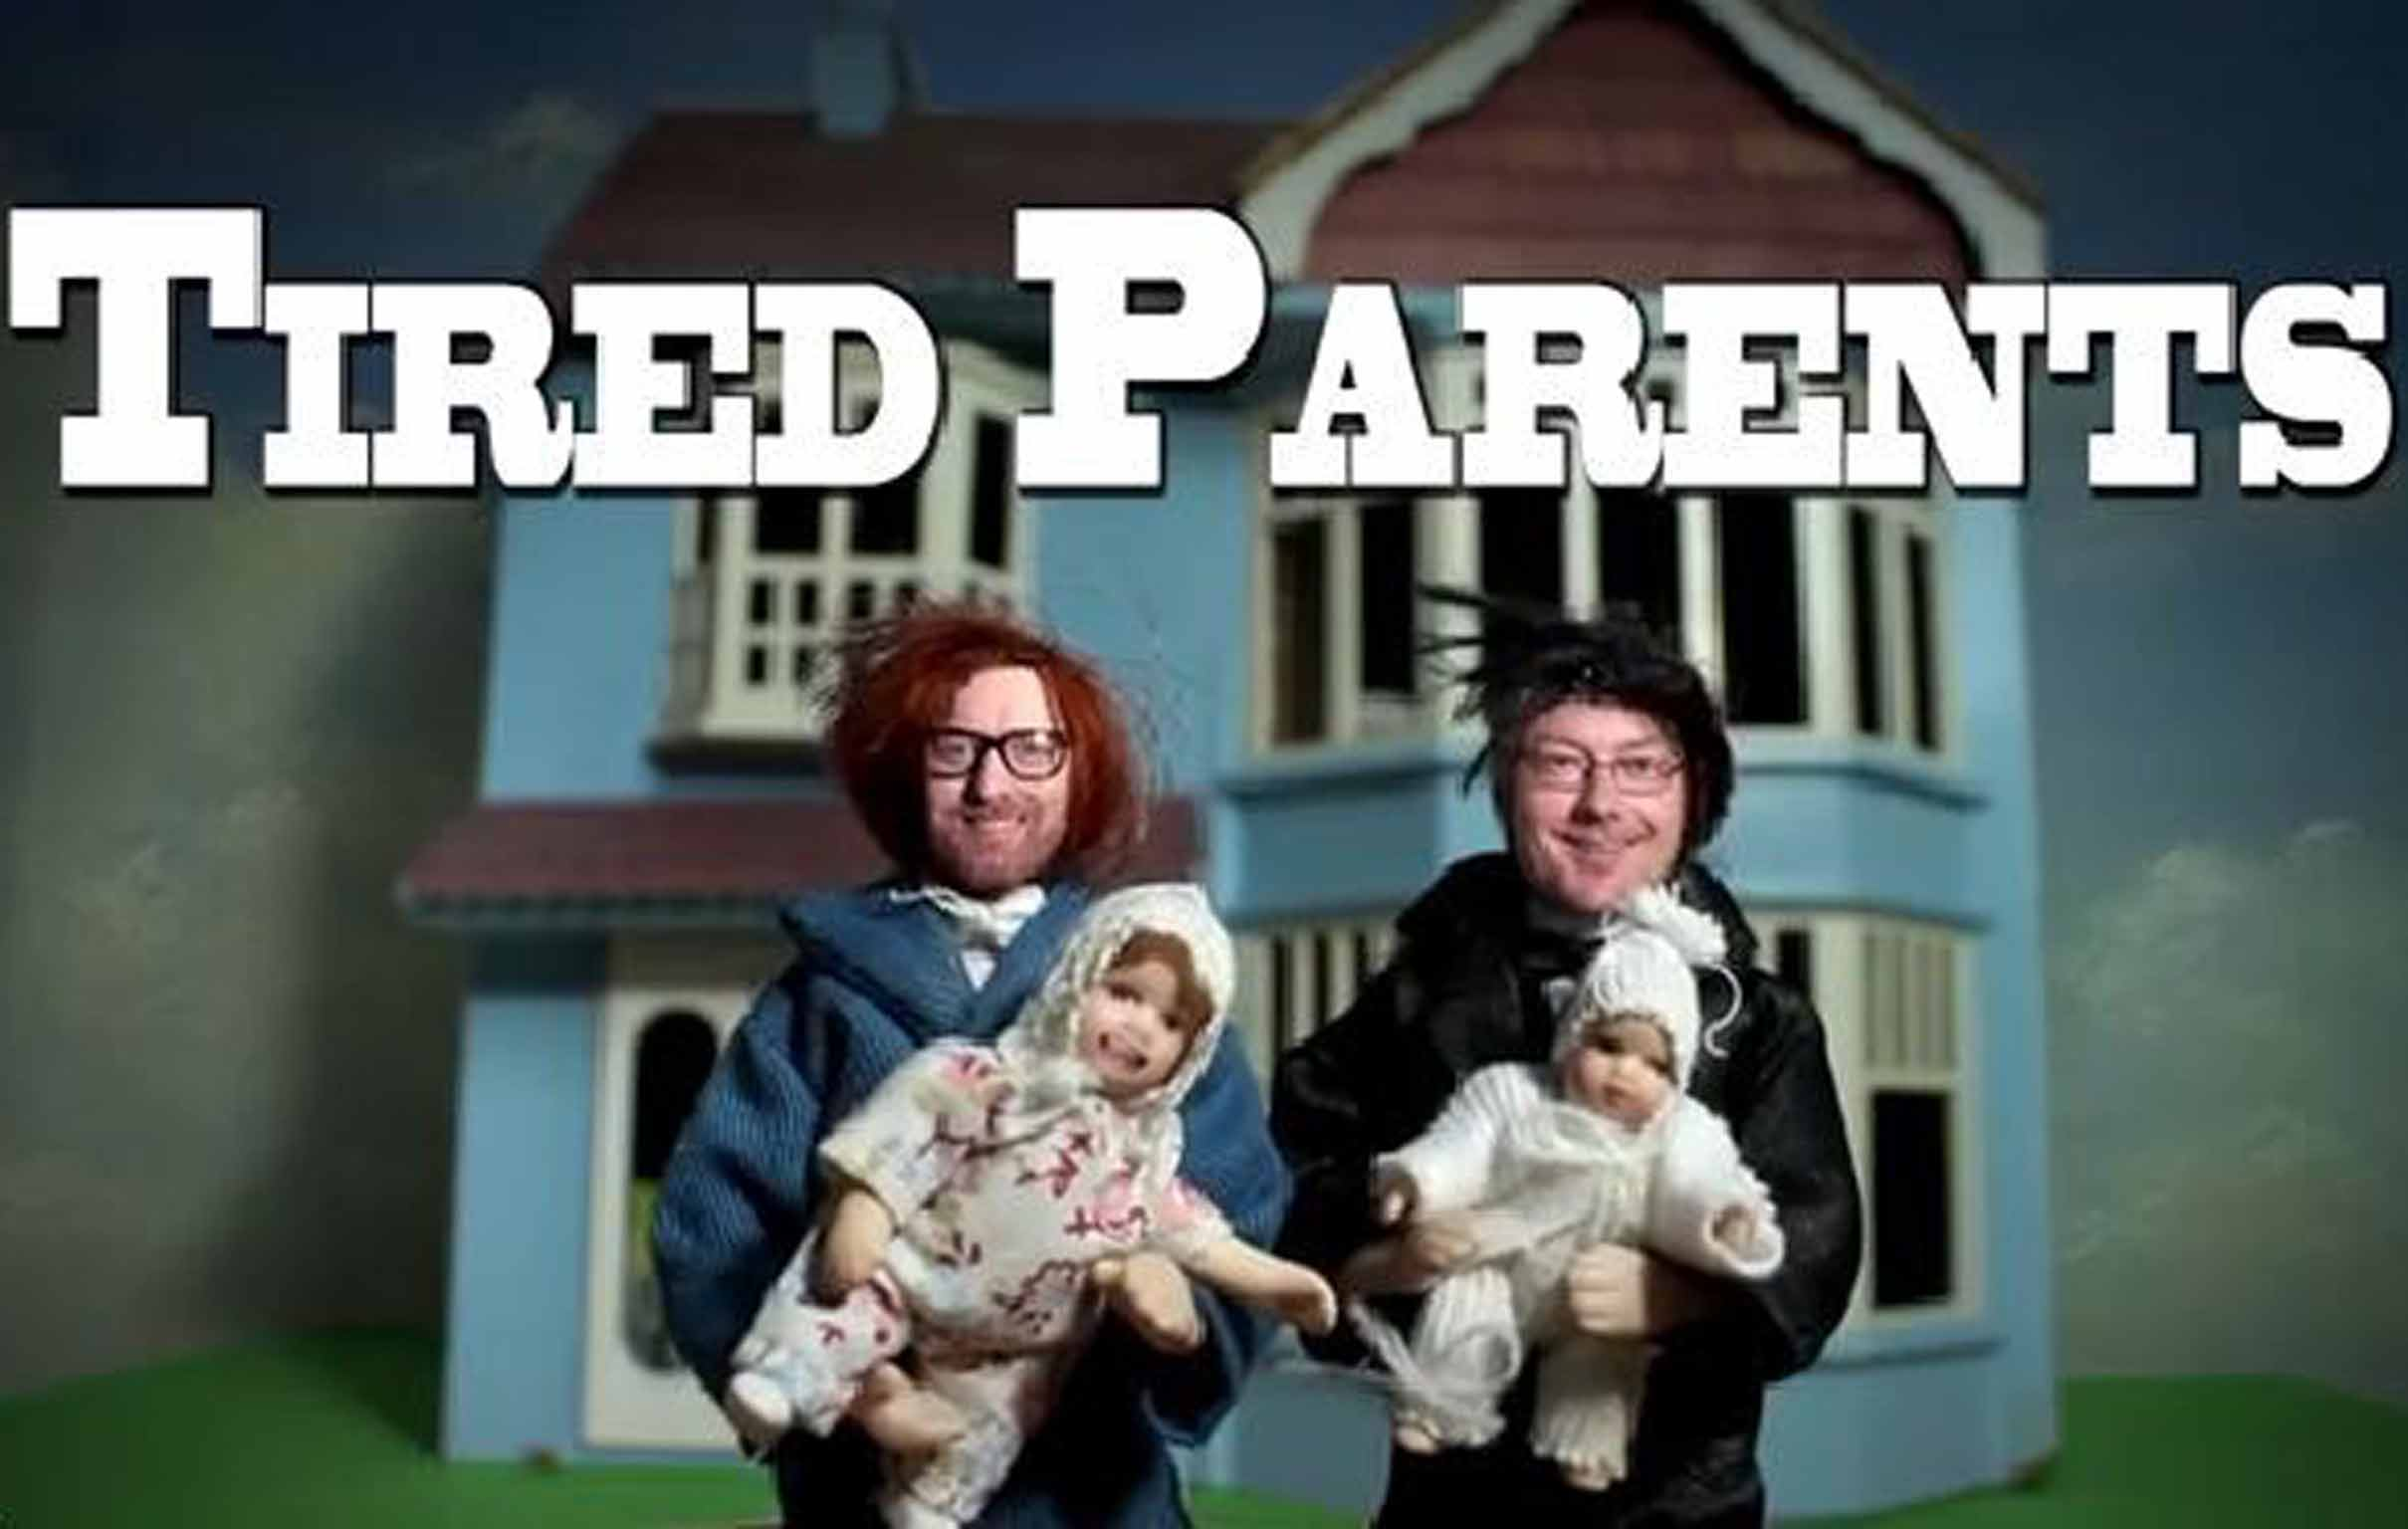 Mumsnet S Tired Parents Video Series Explores New Baby Sleep Deprivation And Is Very Funny At The Same Time The Independent Independent